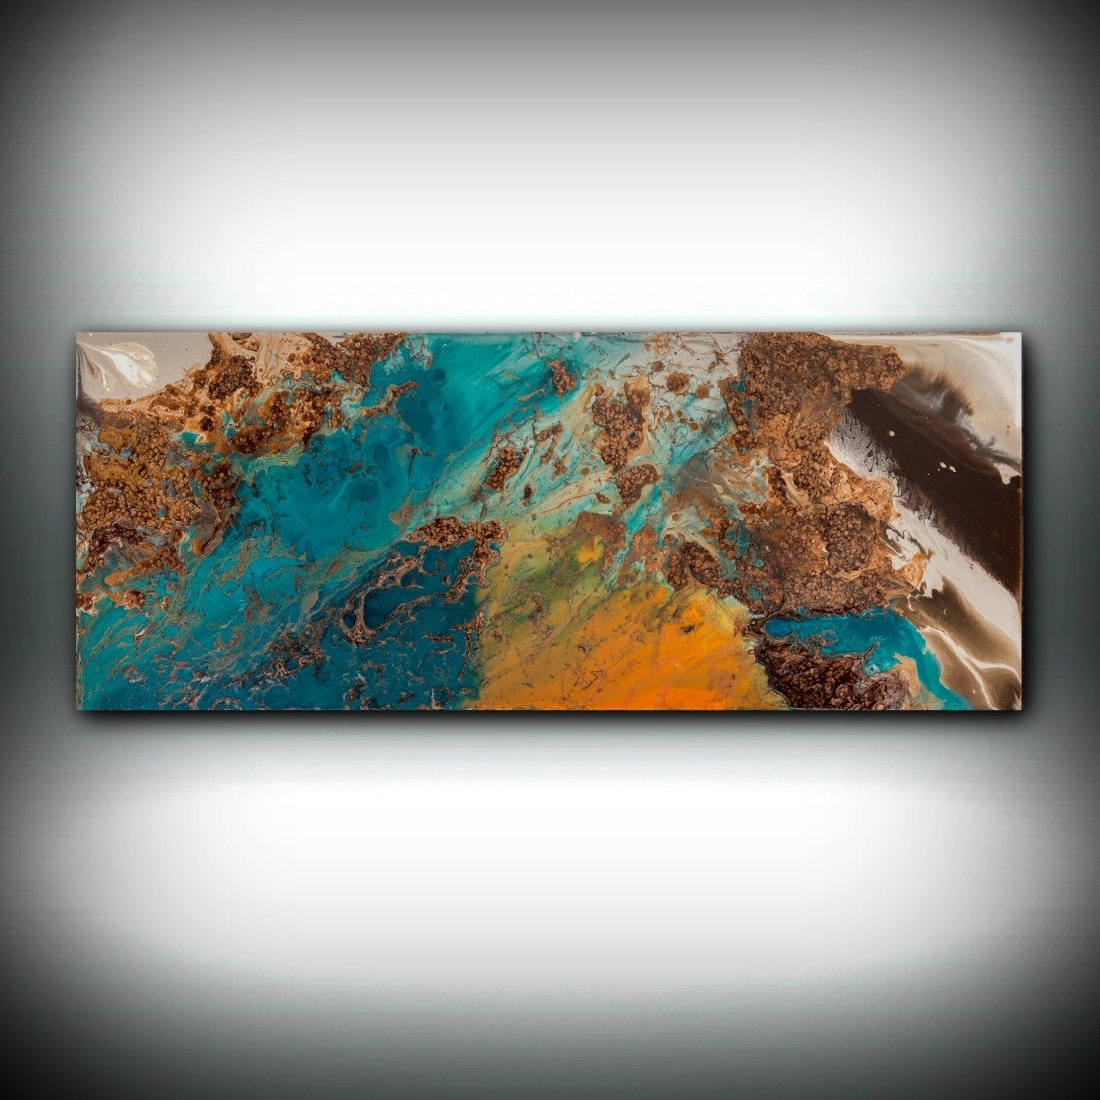 Framed Fine Art Prints Throughout Fashionable Sale Blue And Copper Art, Wall Art Prints Fine Art Prints Abstract (View 7 of 15)